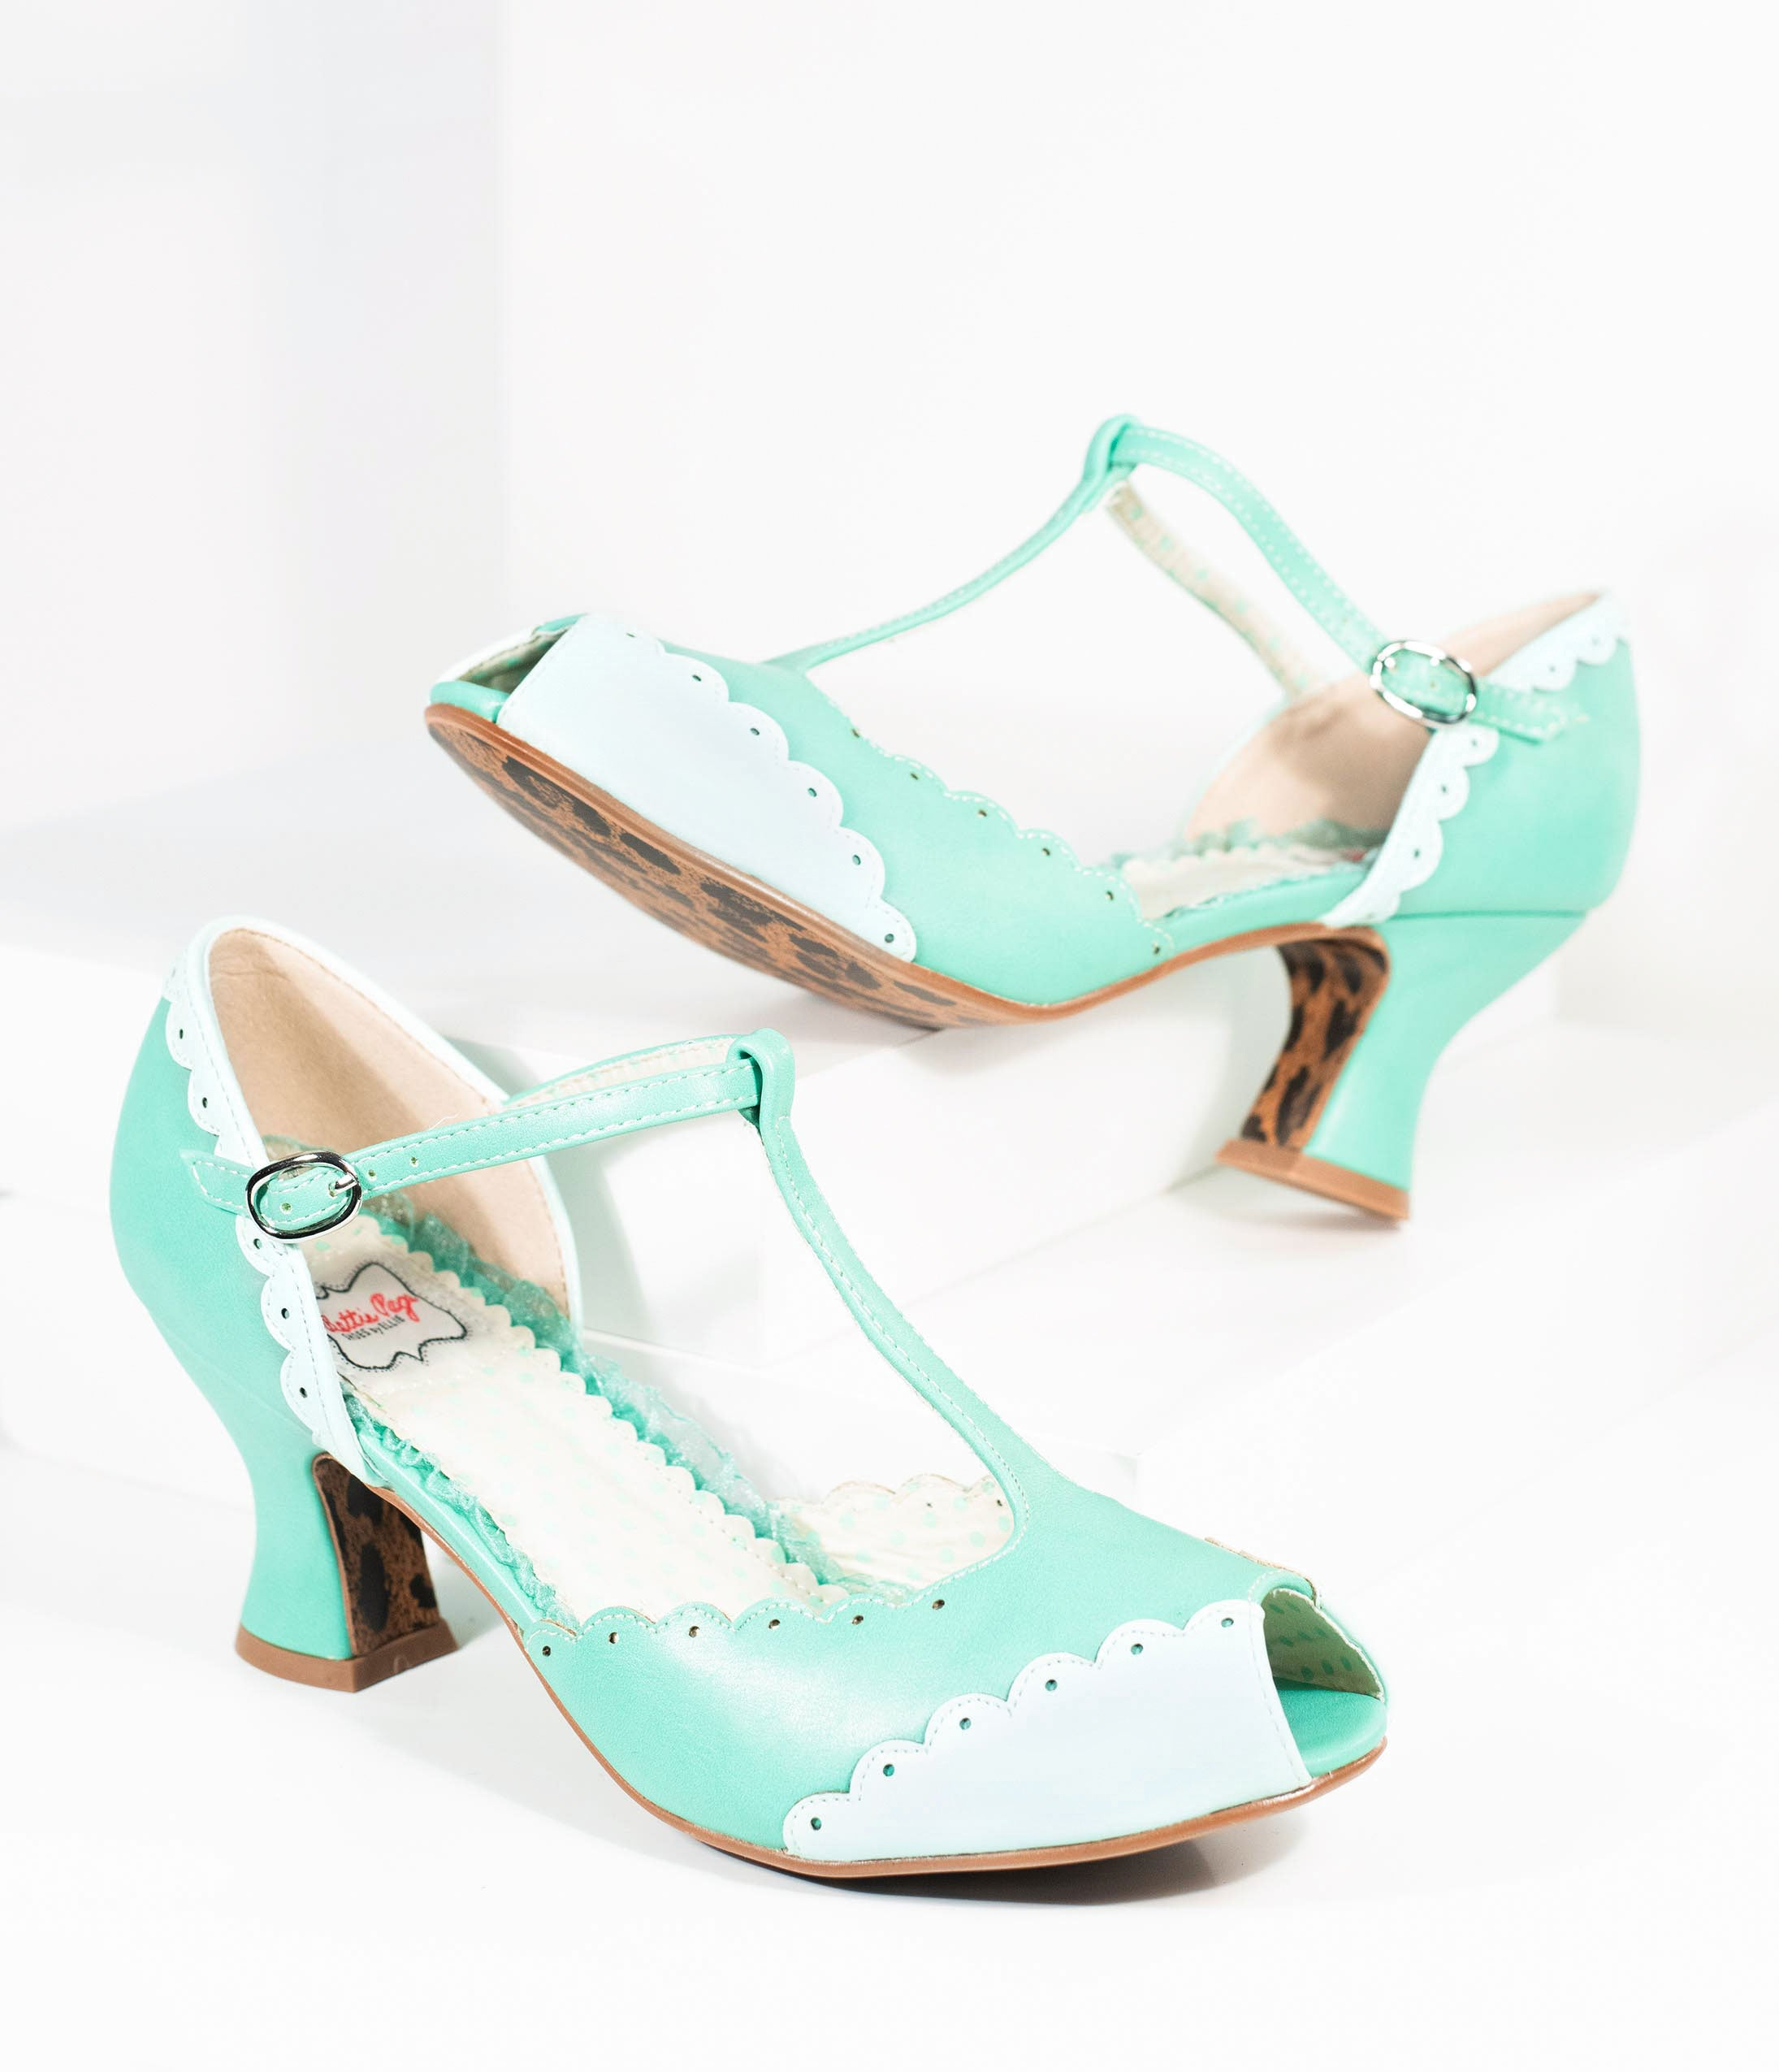 1950s Style Shoes | Heels, Flats, Saddle Shoes Bettie Page 1940S Turquoise Mint Scalloped Peep Toe T-Strap Carlie Heels $82.00 AT vintagedancer.com